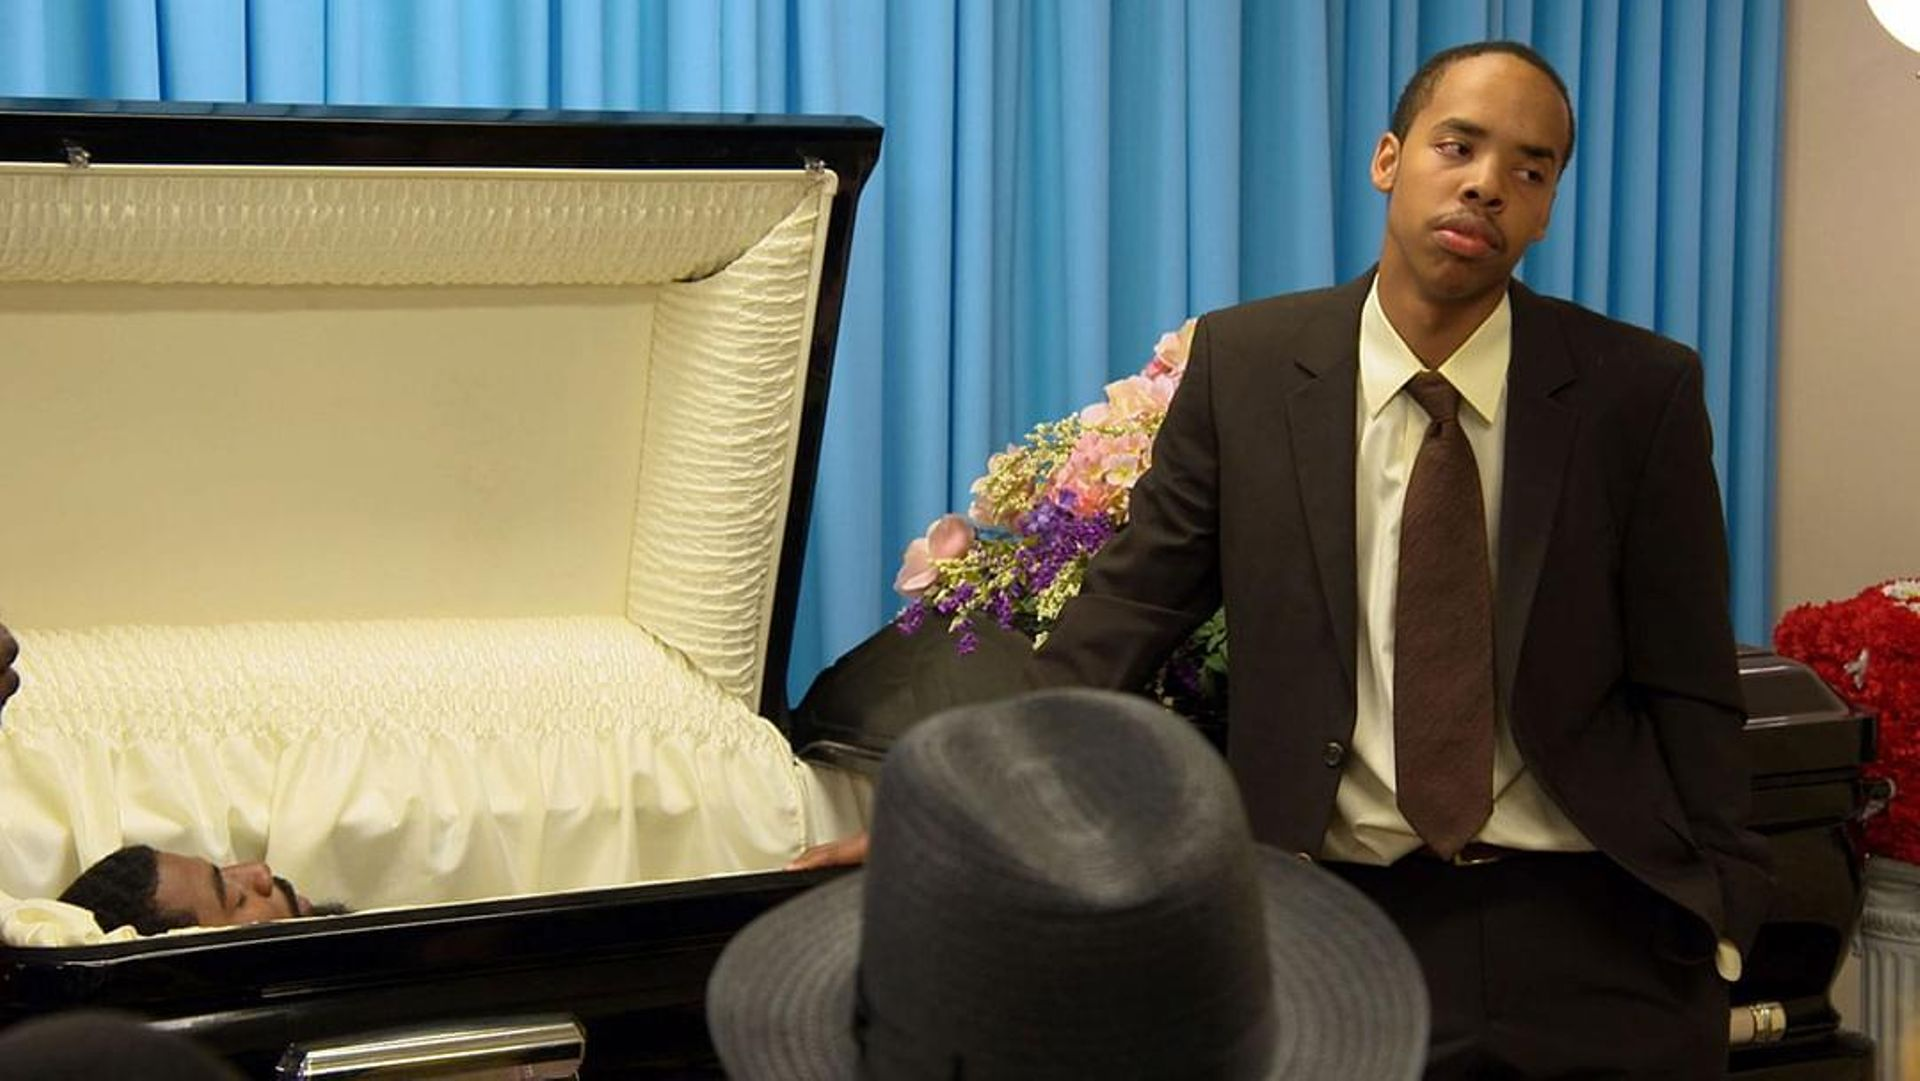 Loiter Squad - Funeral Service